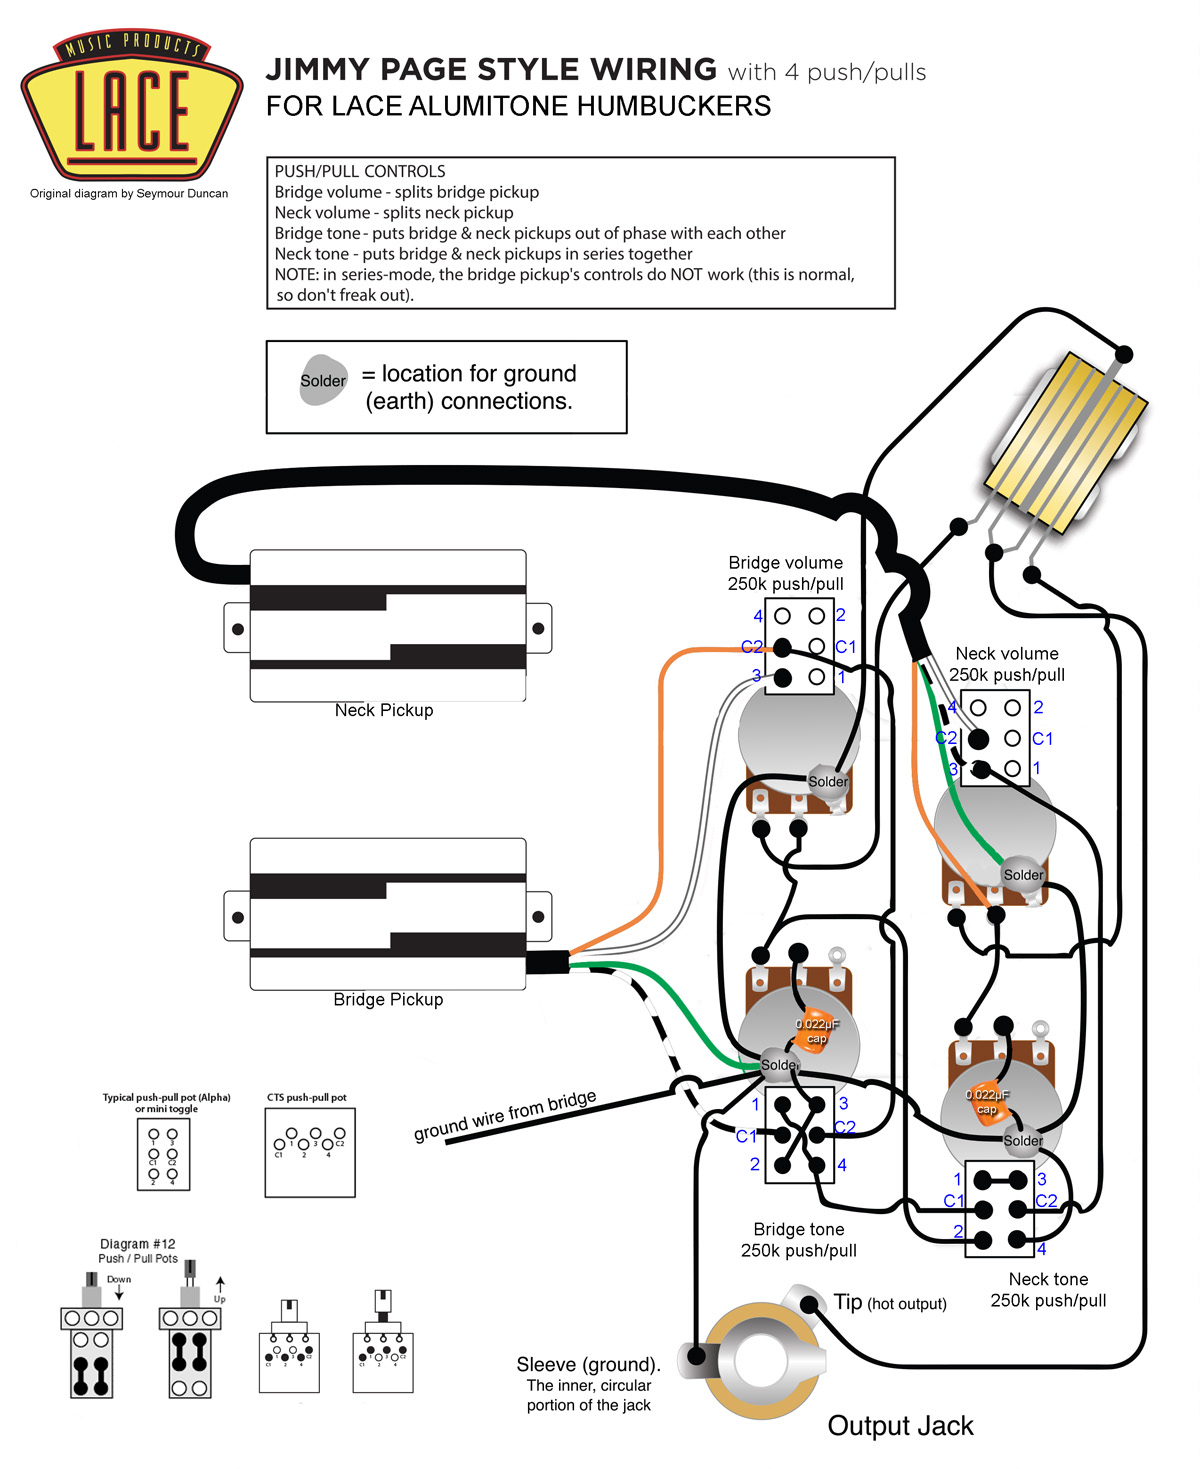 Jimmy Page Wiring Diagram Guide And Troubleshooting Of Duncan Les Paul Coil Split Todays Rh 1 15 9 1813weddingbarn Com 920d